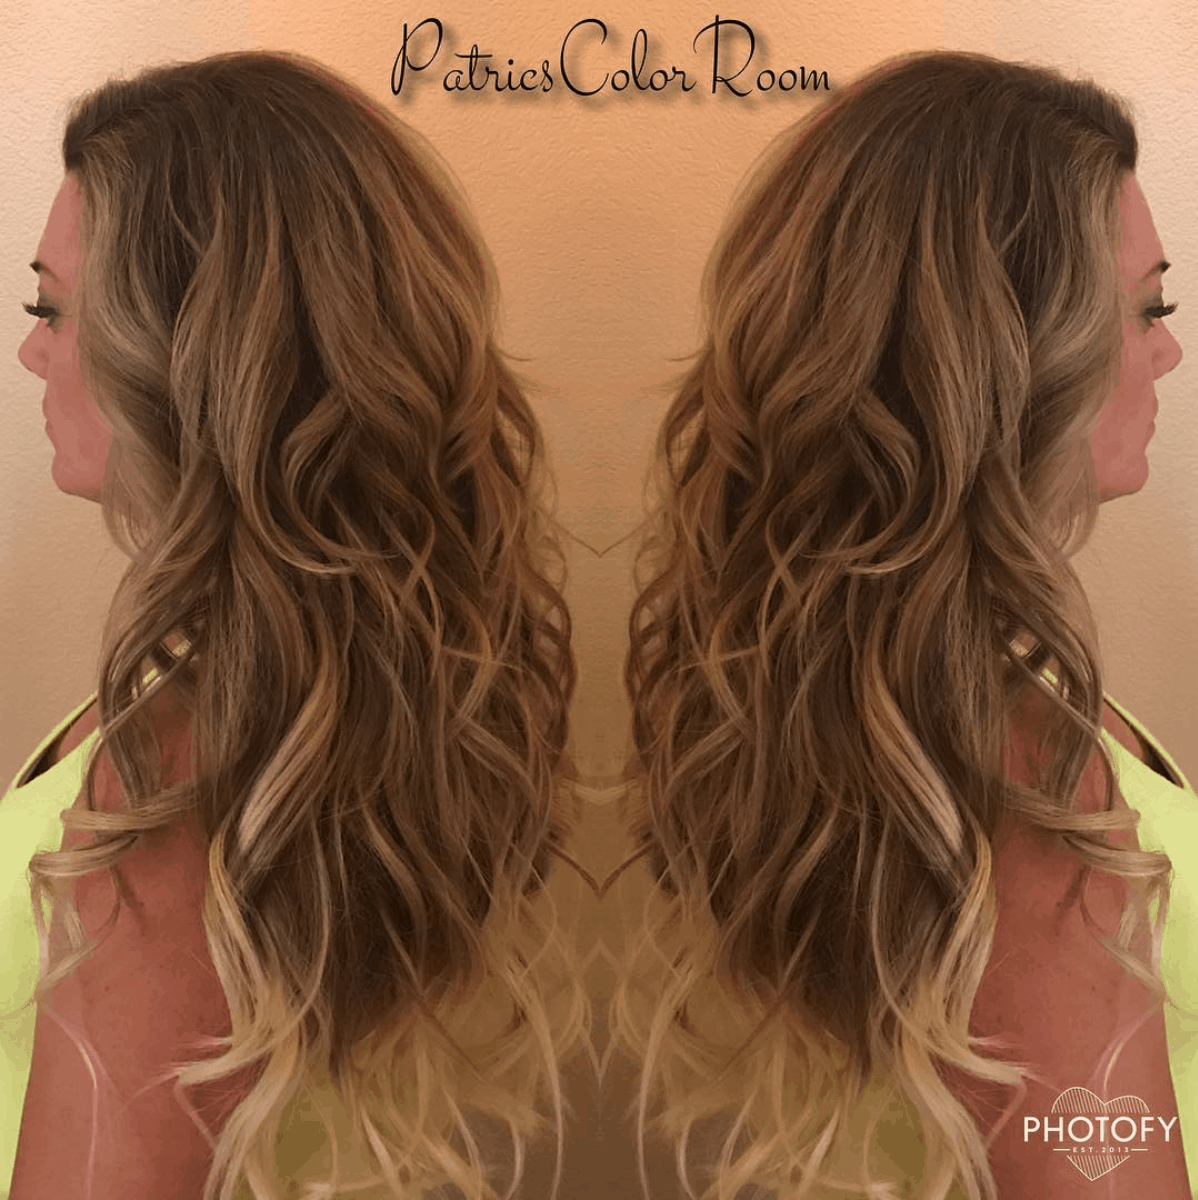 Denver Hair Extension Experts